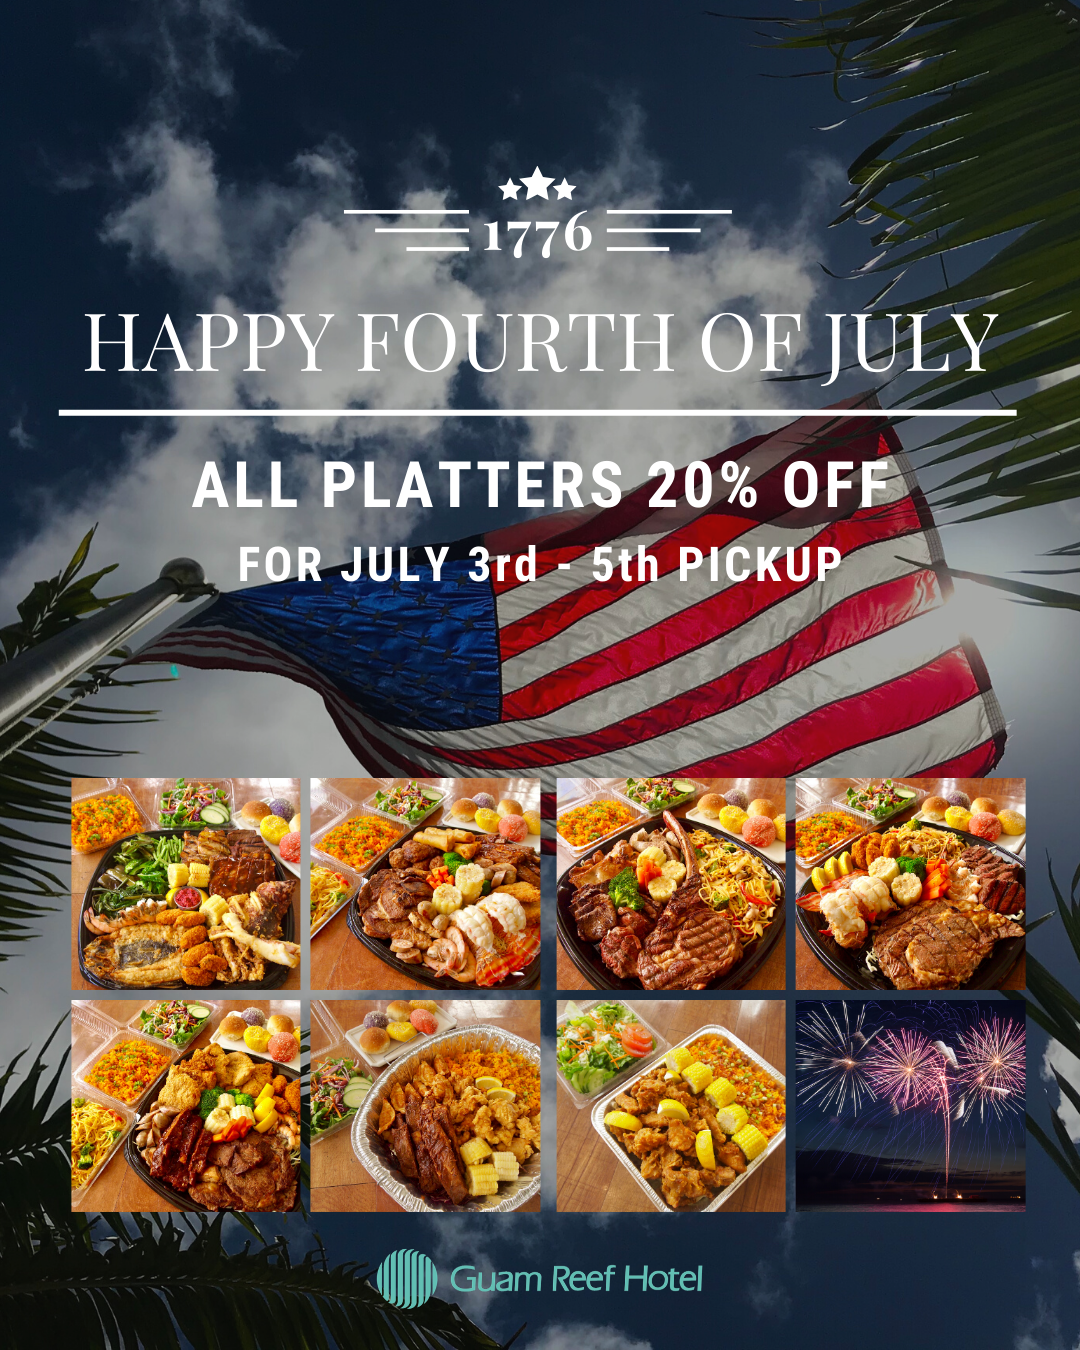 4th of July Weekend: All Platters 20%OFF!